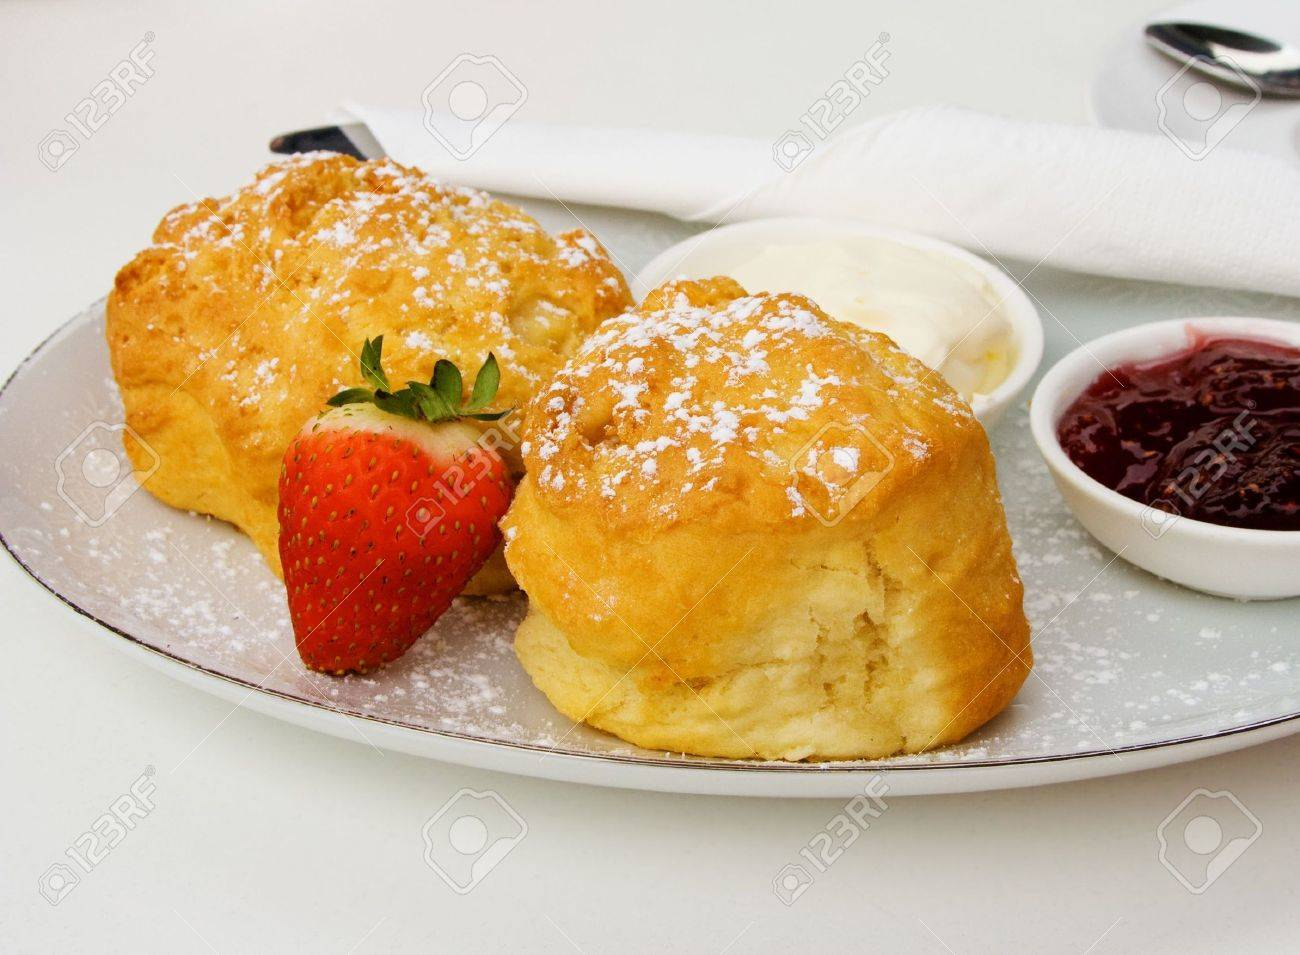 Delicious fresh devonshire scones served with strawberry jam and cream. Stock Photo - 5286976